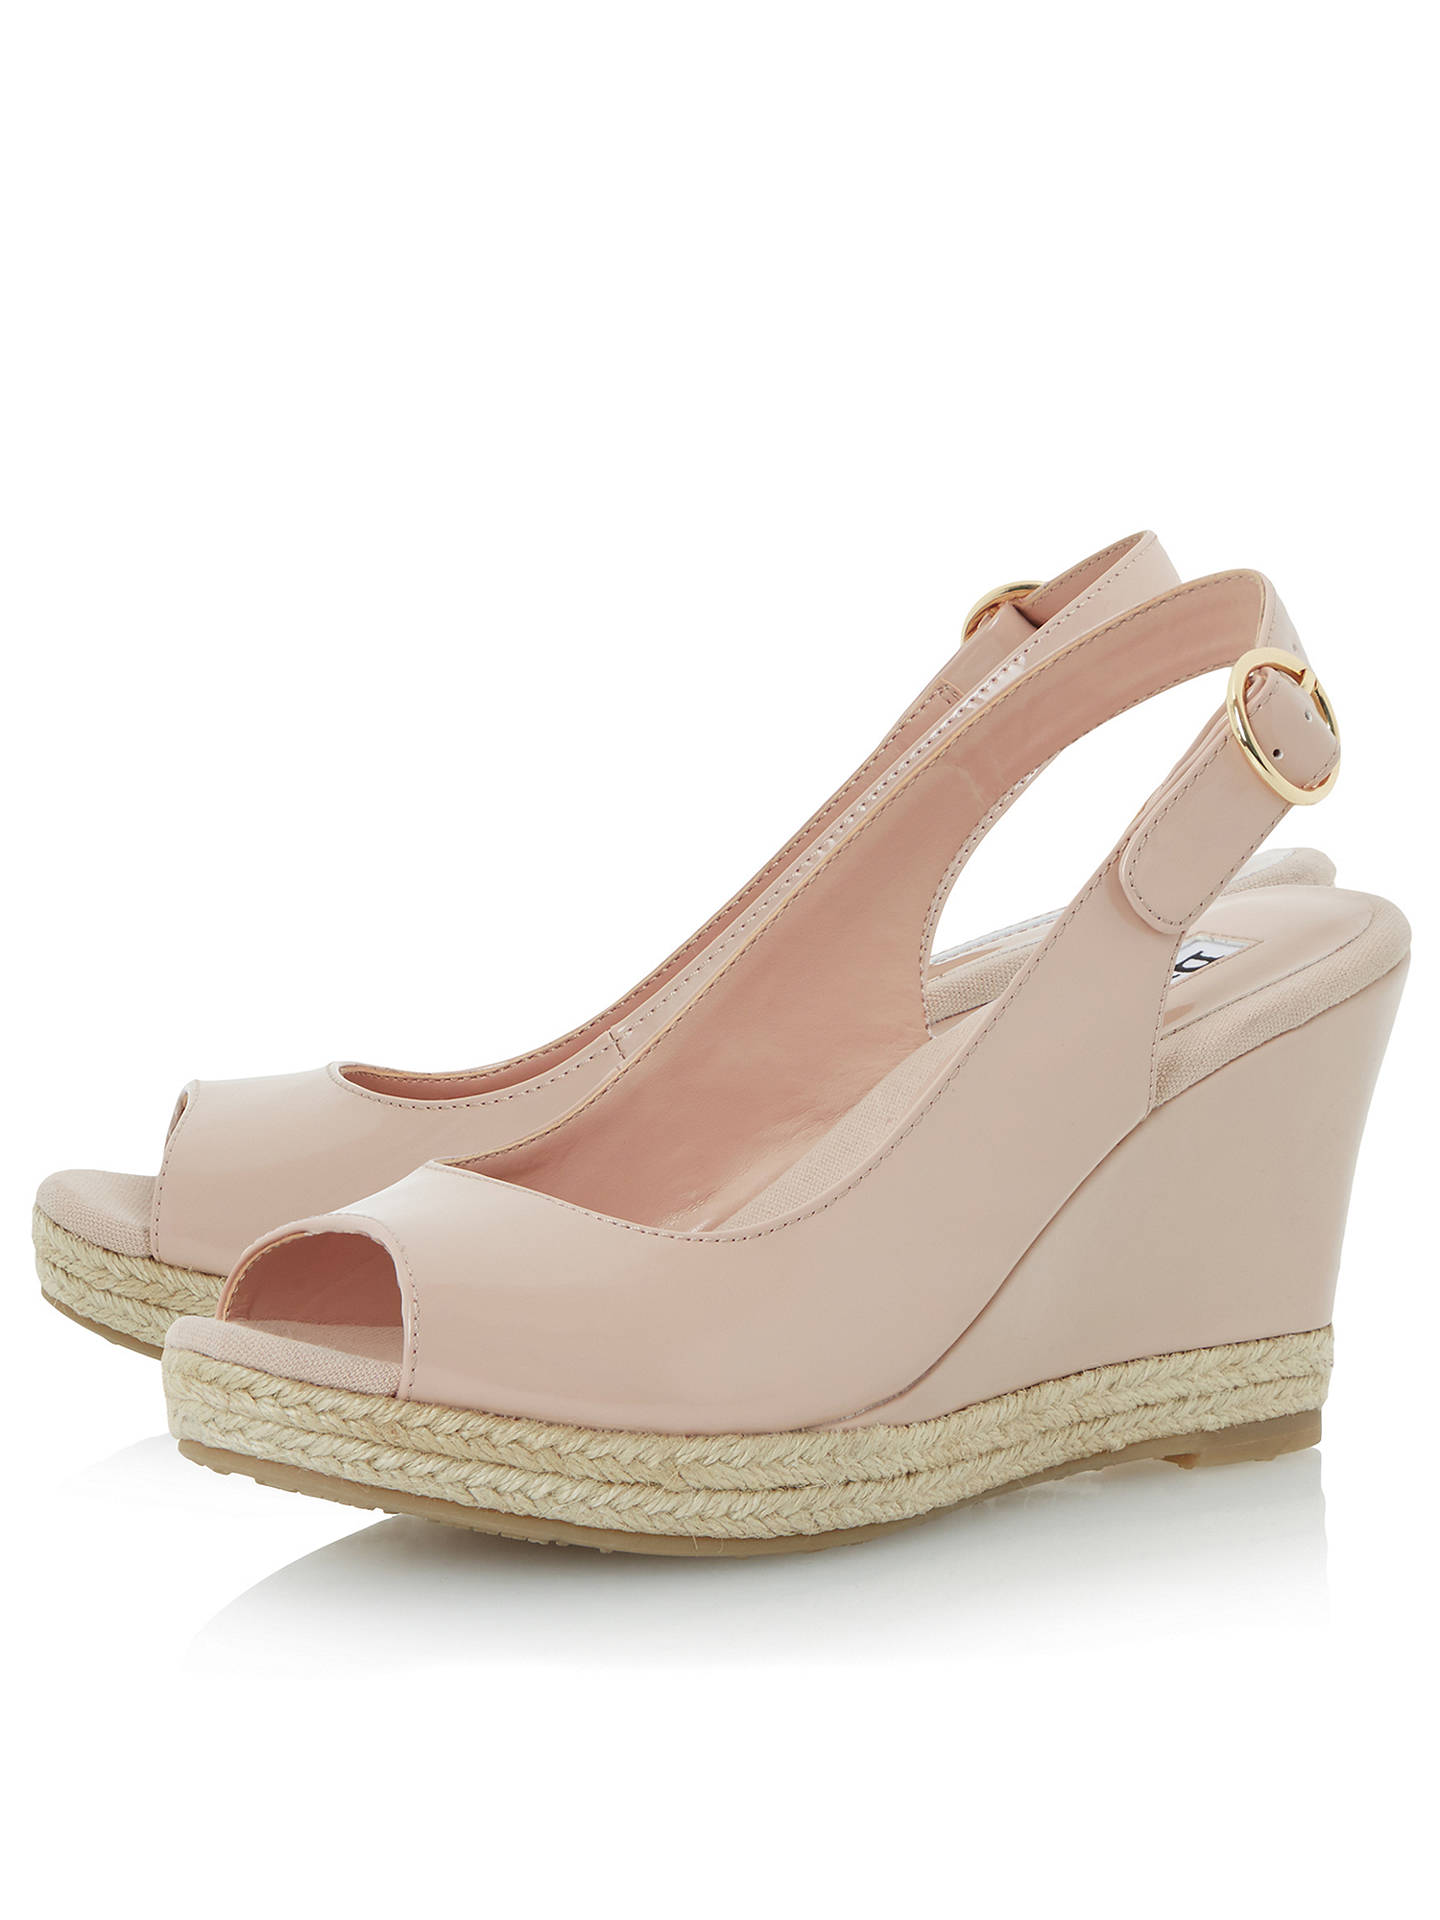 BuyDune Klick Wedge Heel Sandals, Nude Patent, 3 Online at johnlewis.com